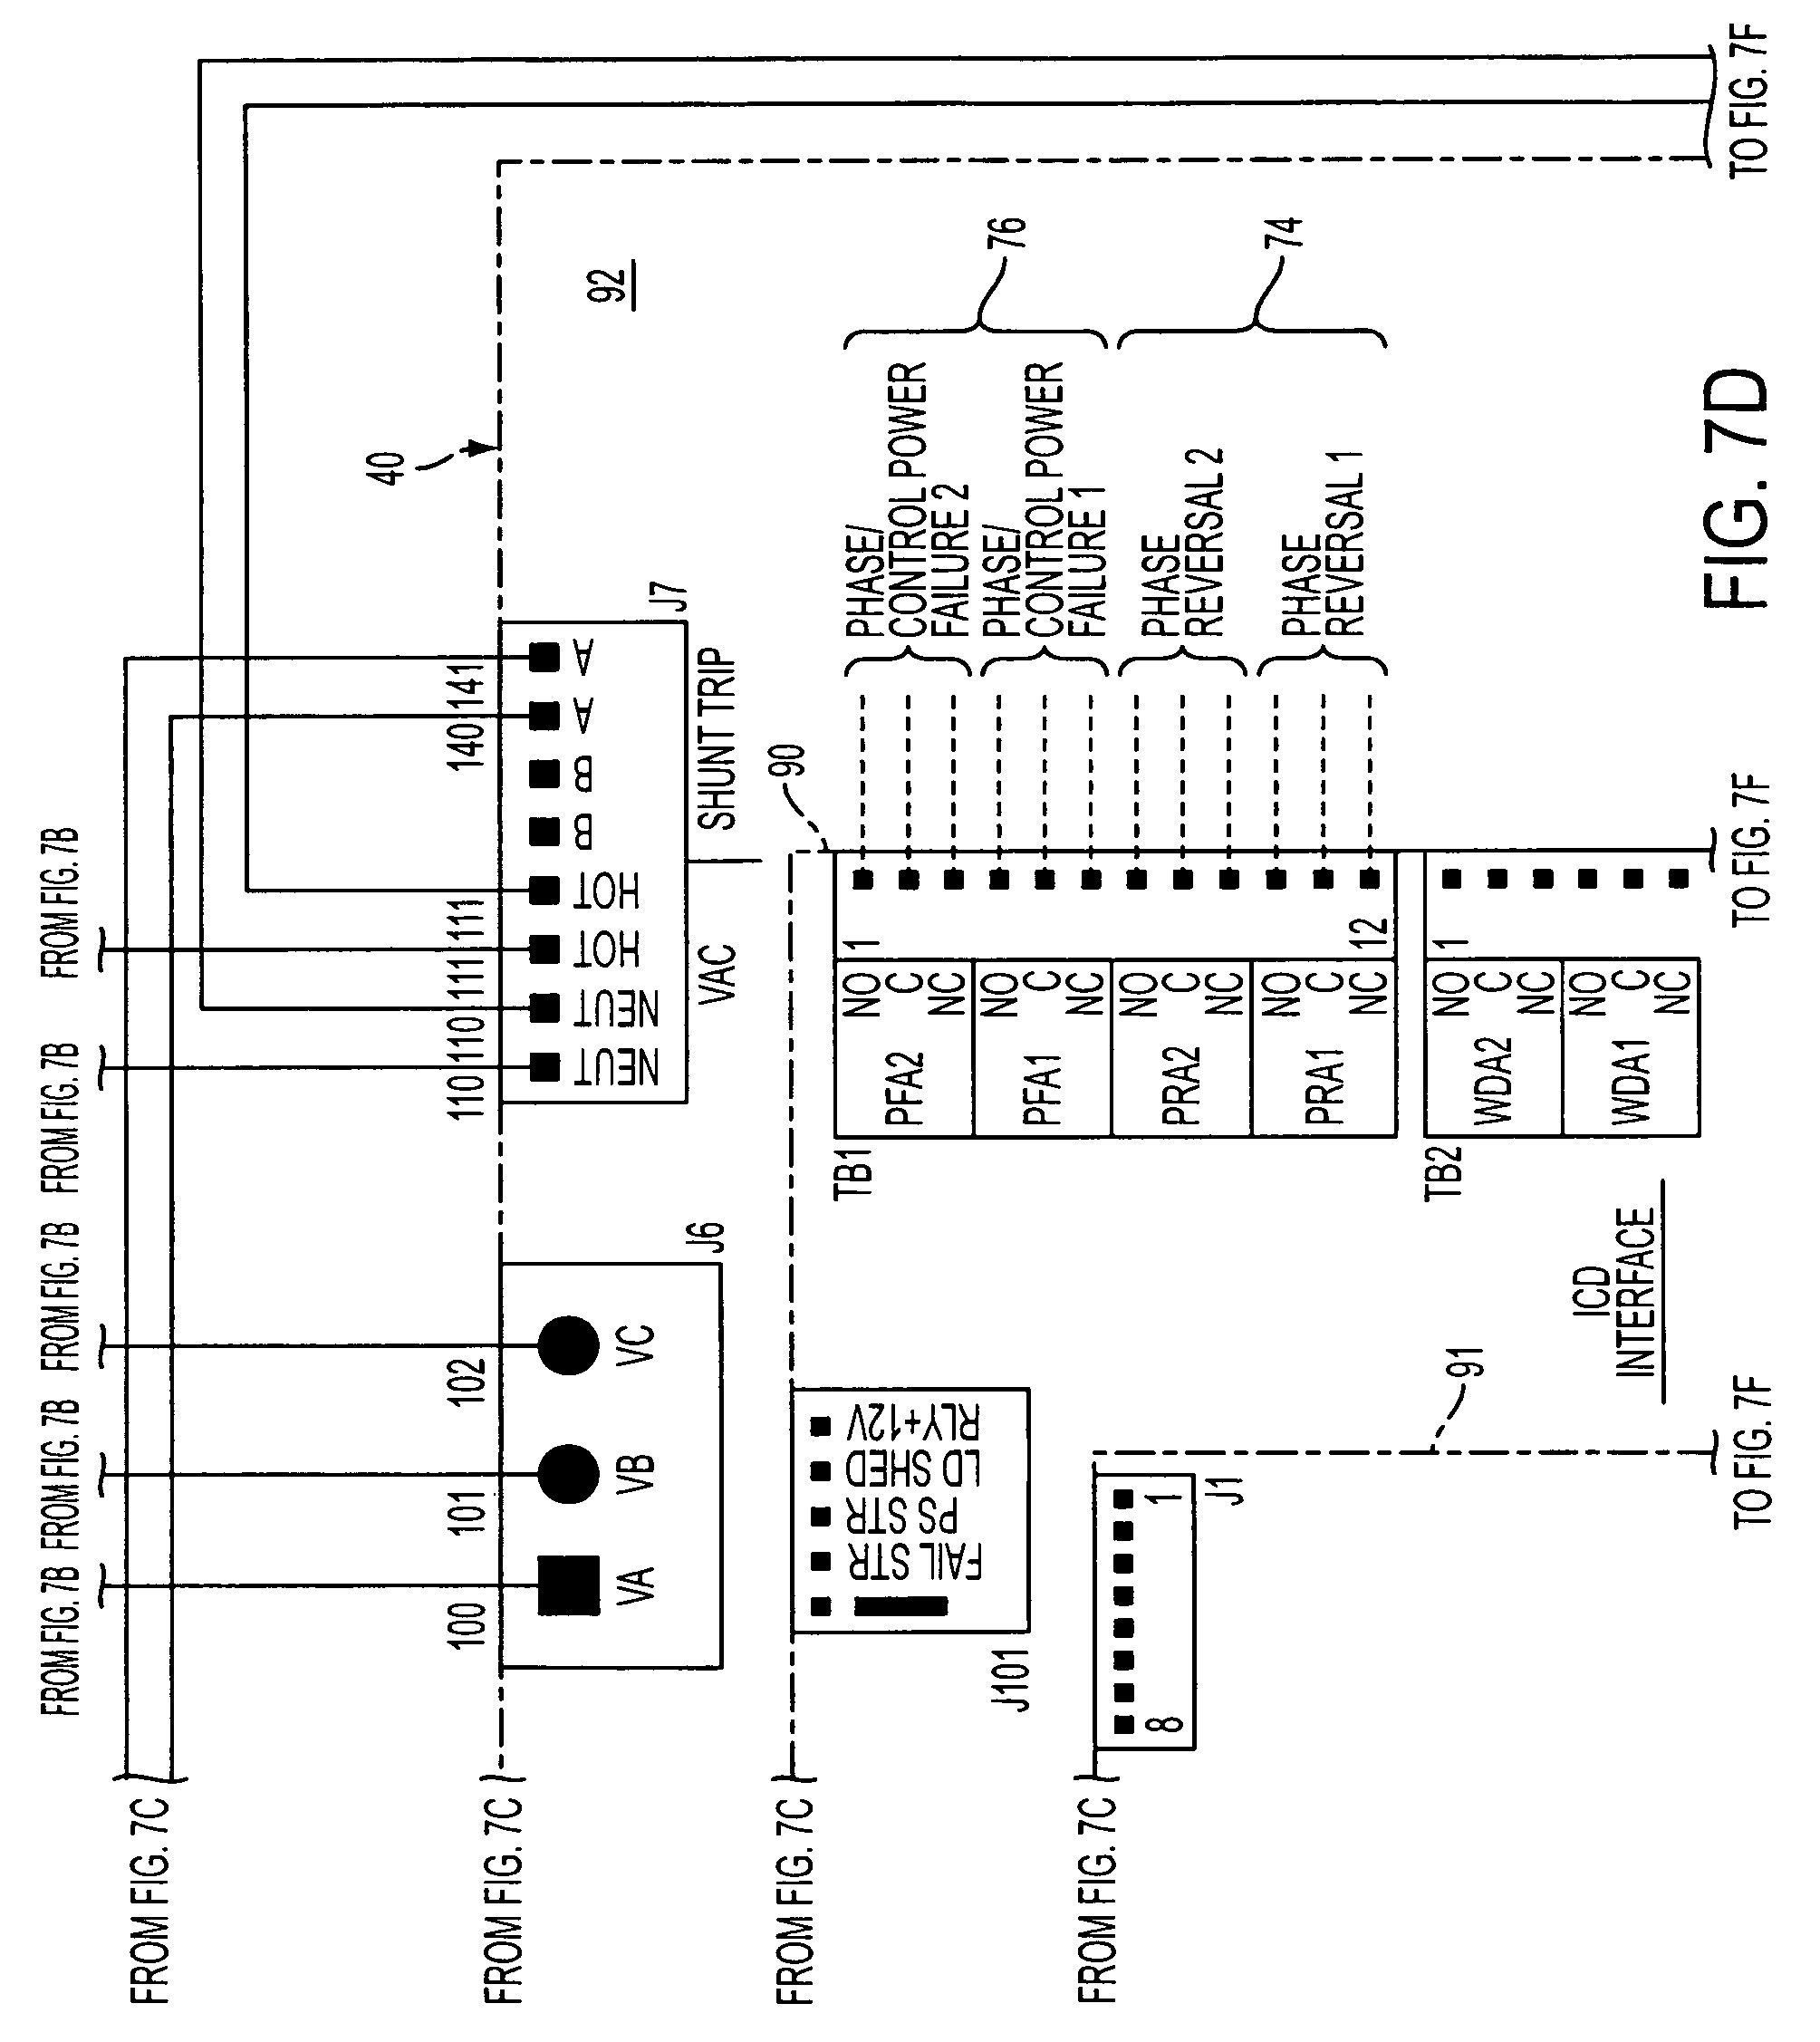 New Wiring Diagram For Alarm System In Car Alarm Systems For Home Alarm System Home Security Systems